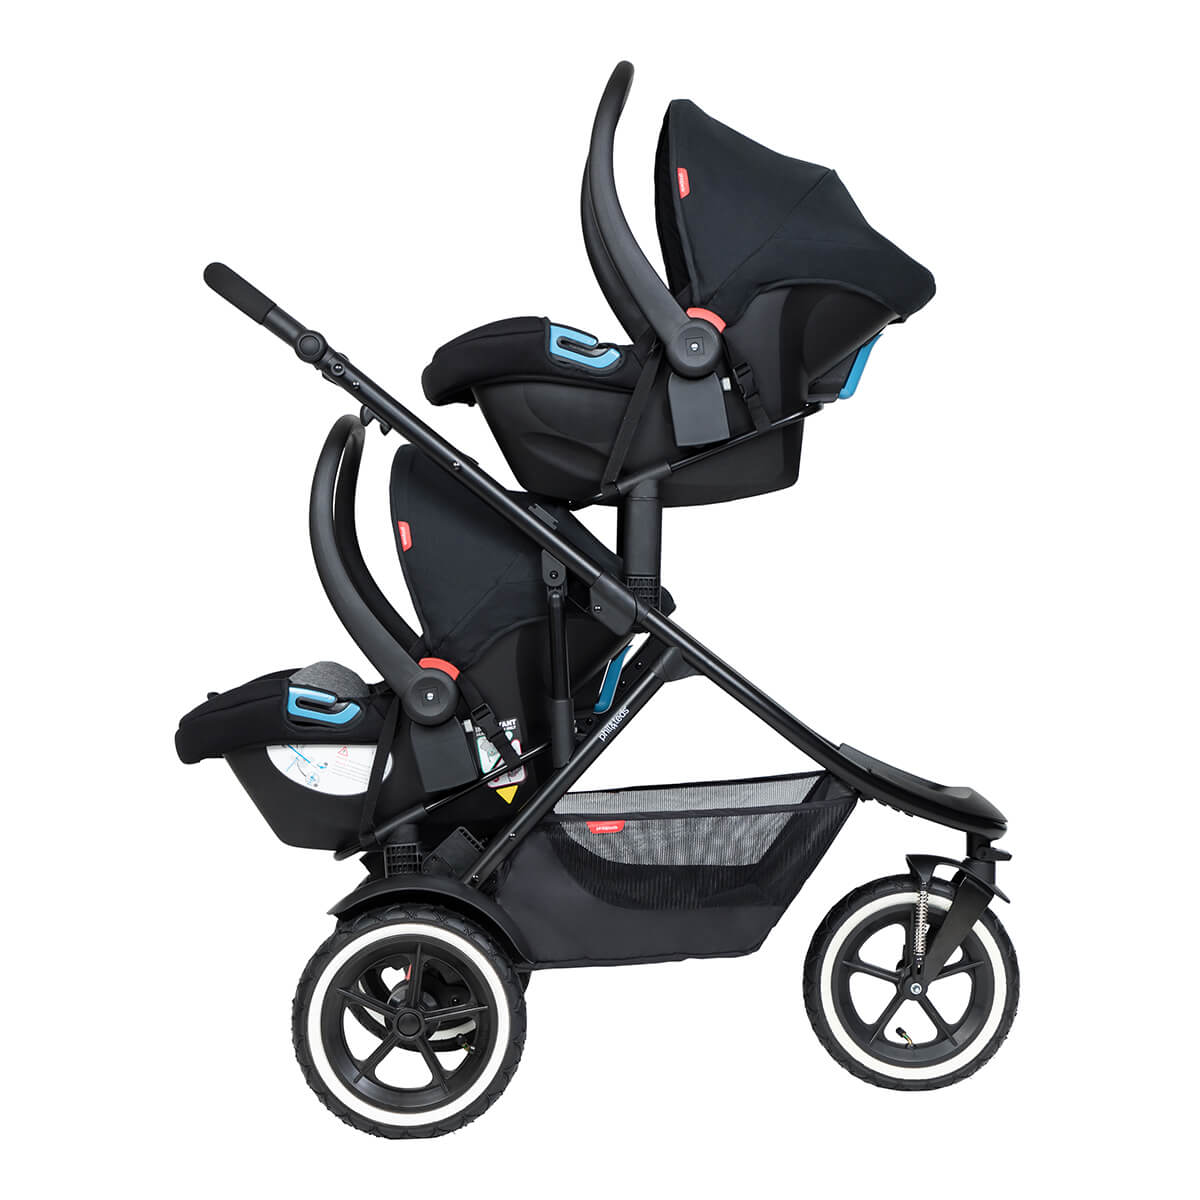 https://cdn.accentuate.io/4467127091253/19118870822965/philteds-sport-buggy-with-double-alpha-travel-system-v1626403835662.jpg?1200x1200